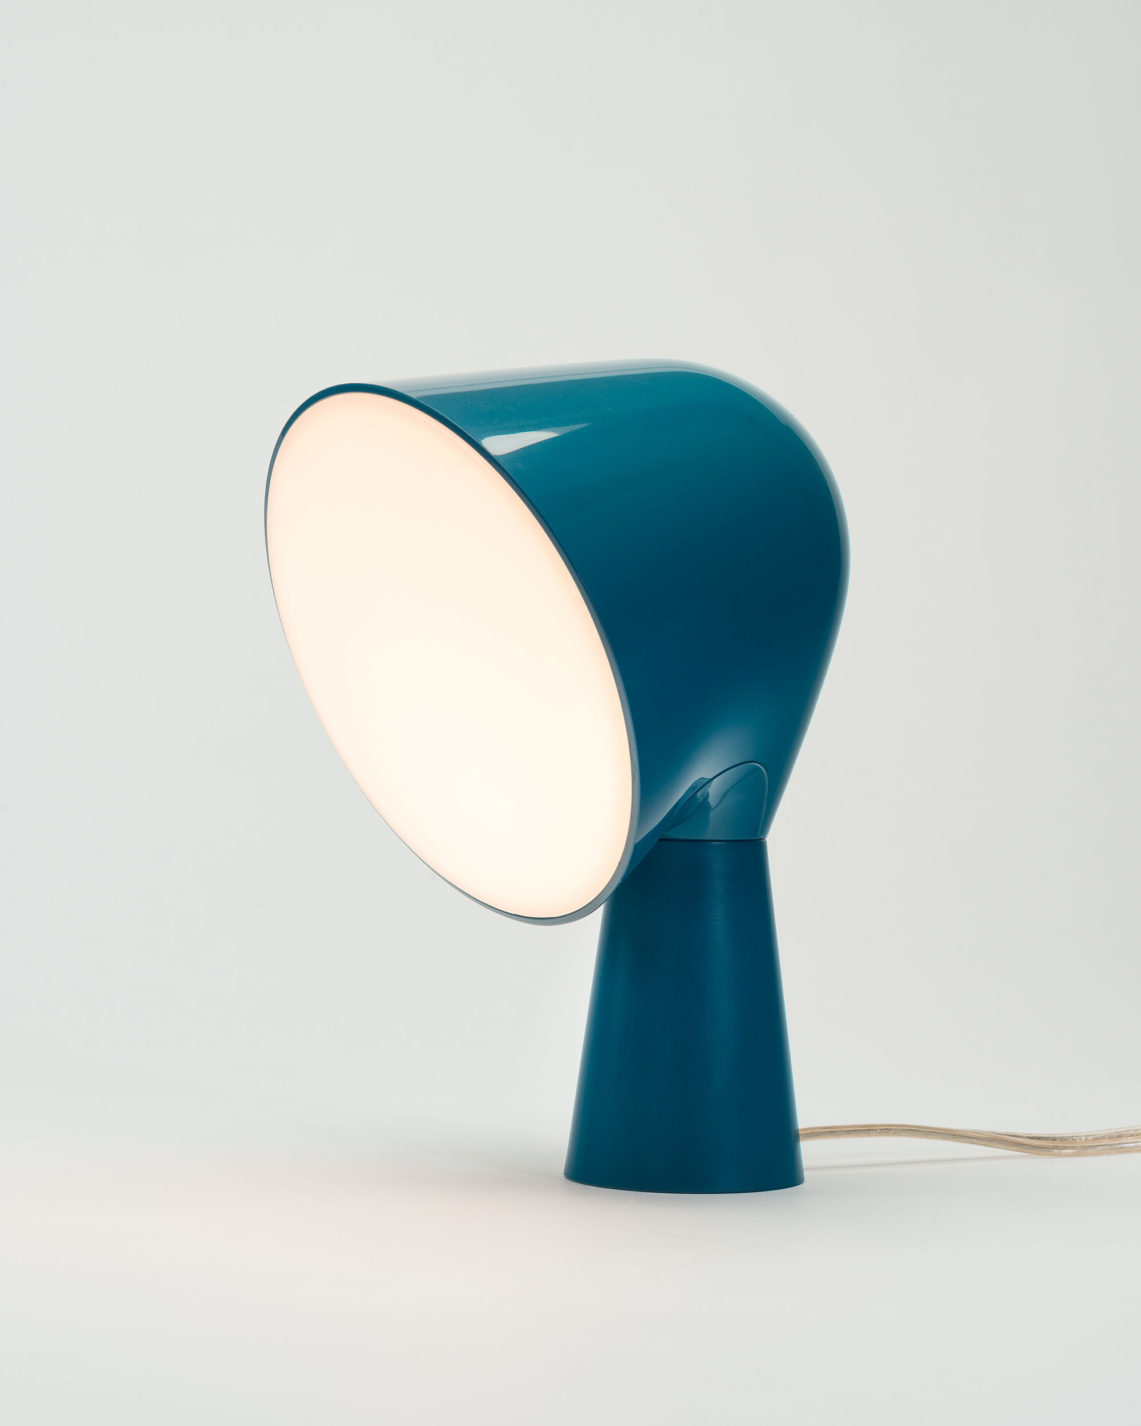 Table lamp in blue plastic with a slender conical base, wider conical top, and a translucent white disc covering the light source.